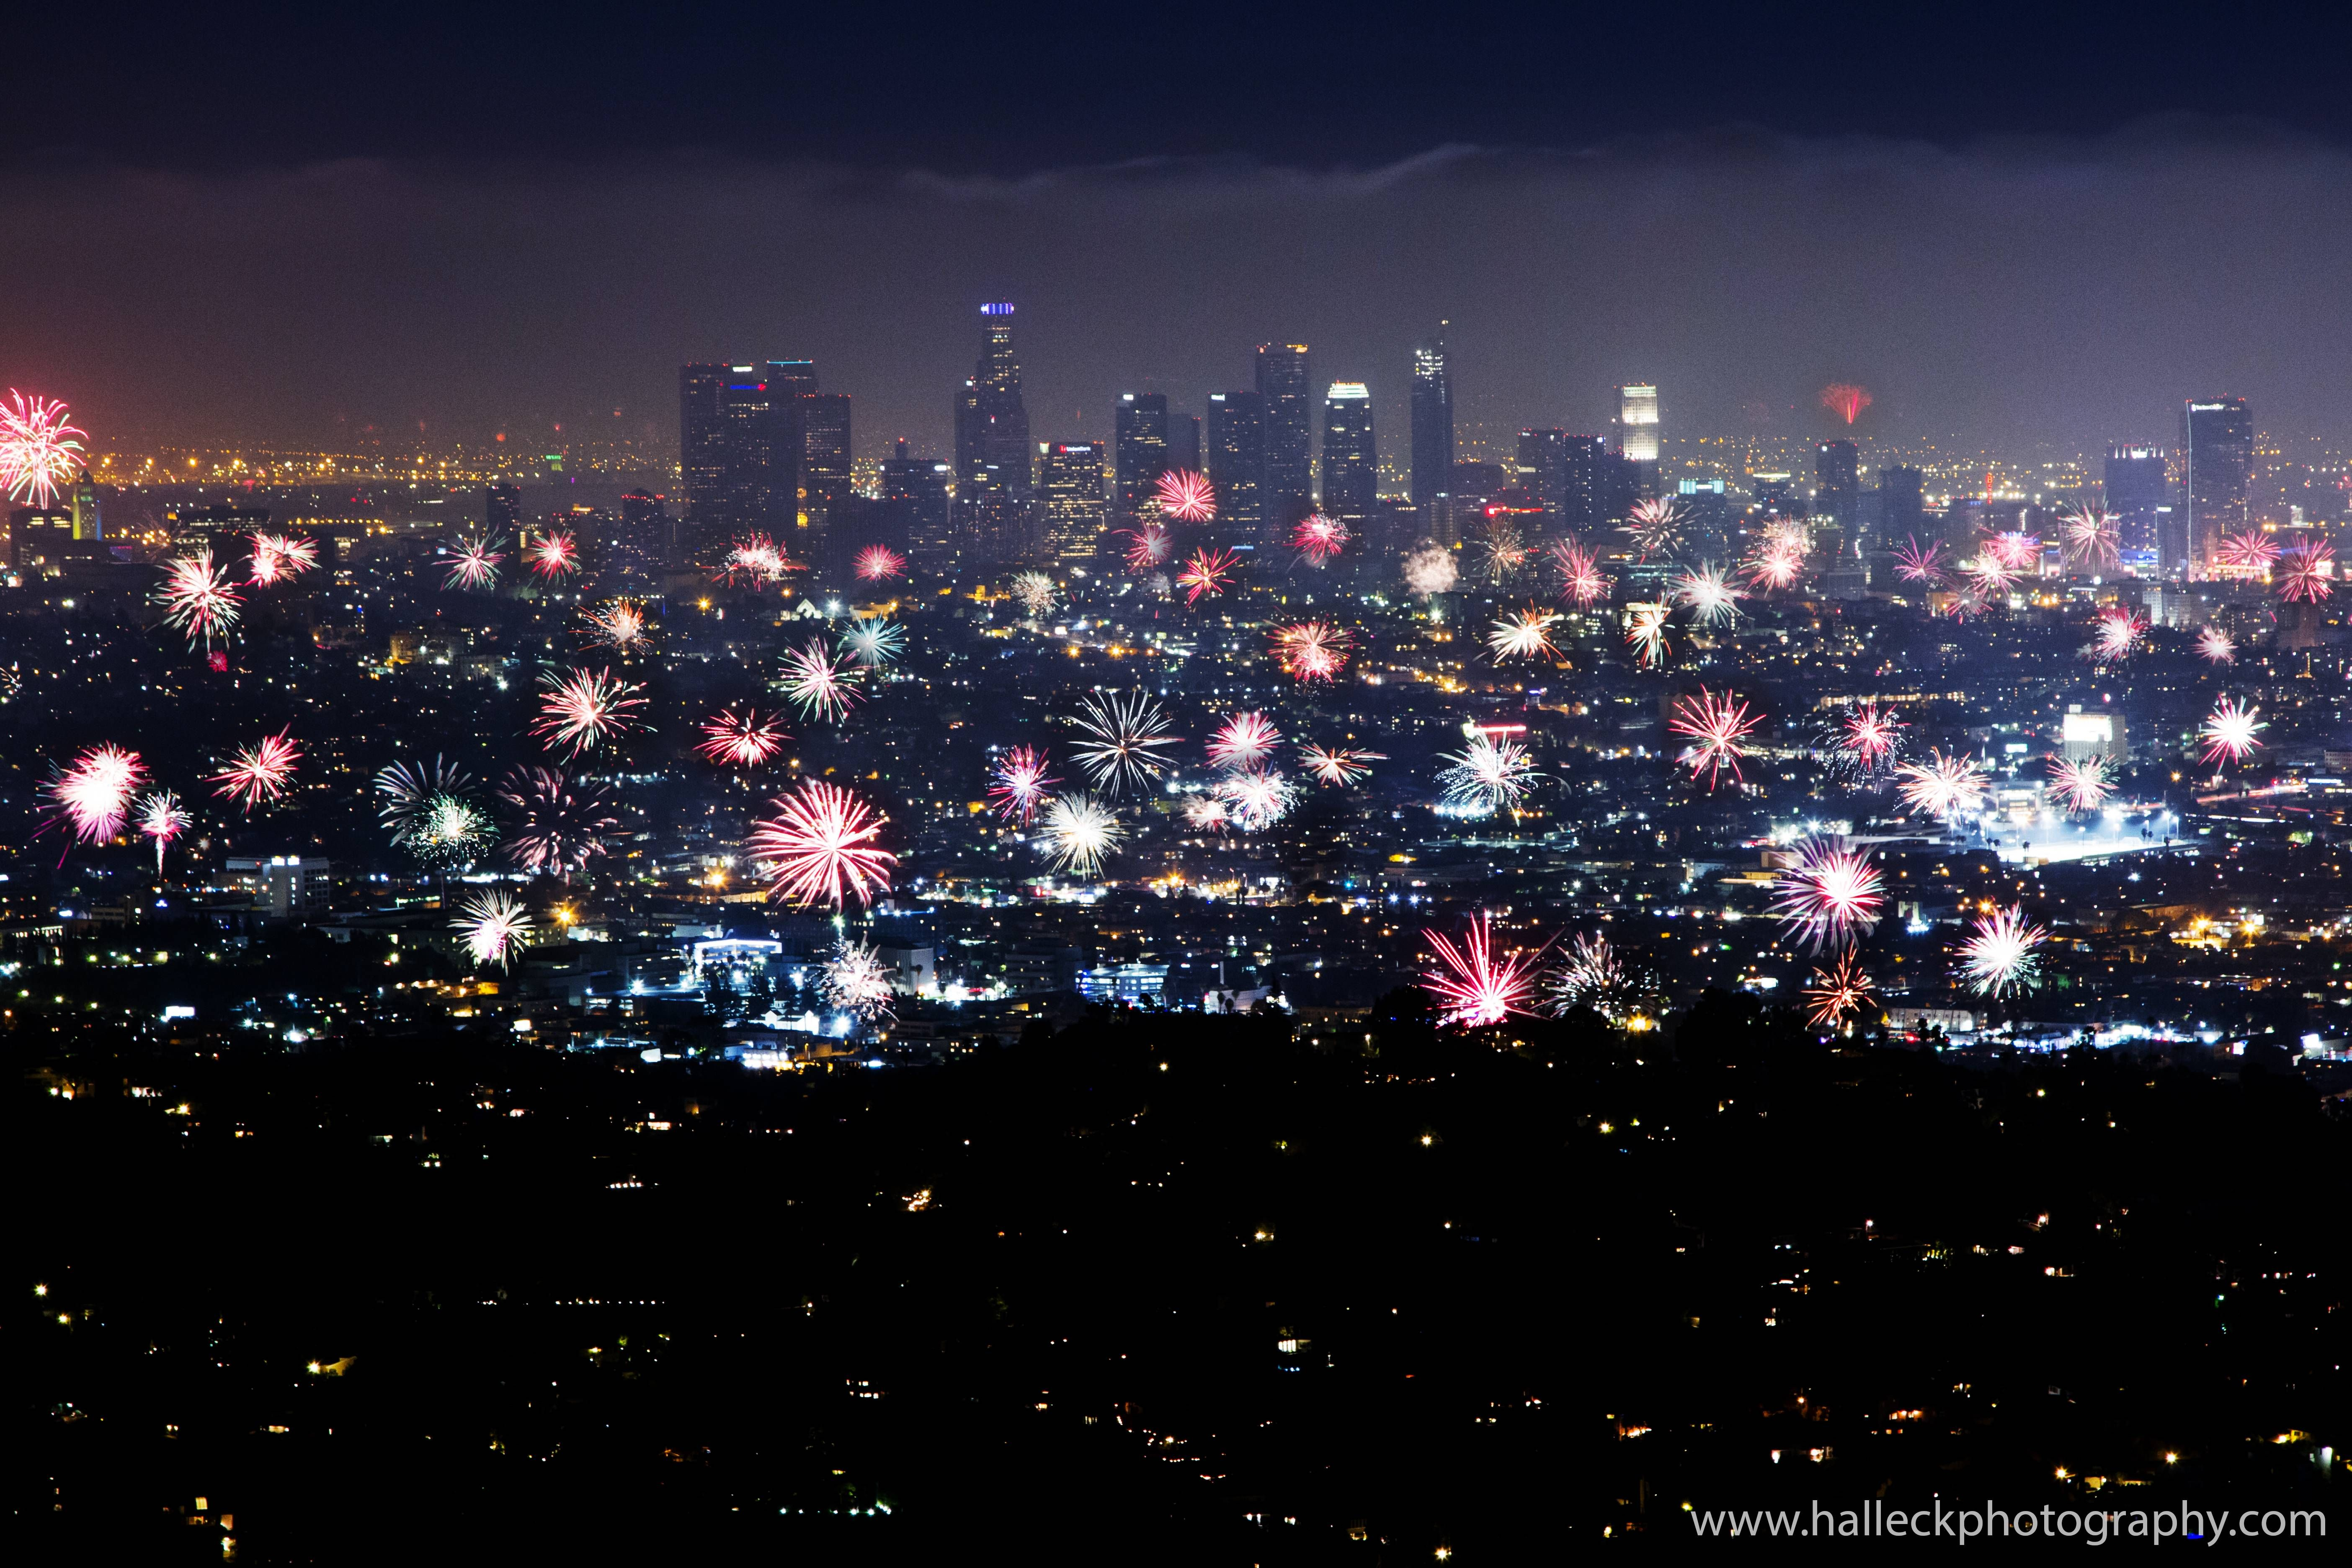 10 Minutes worth of fireworks over Los Angeles in one photo